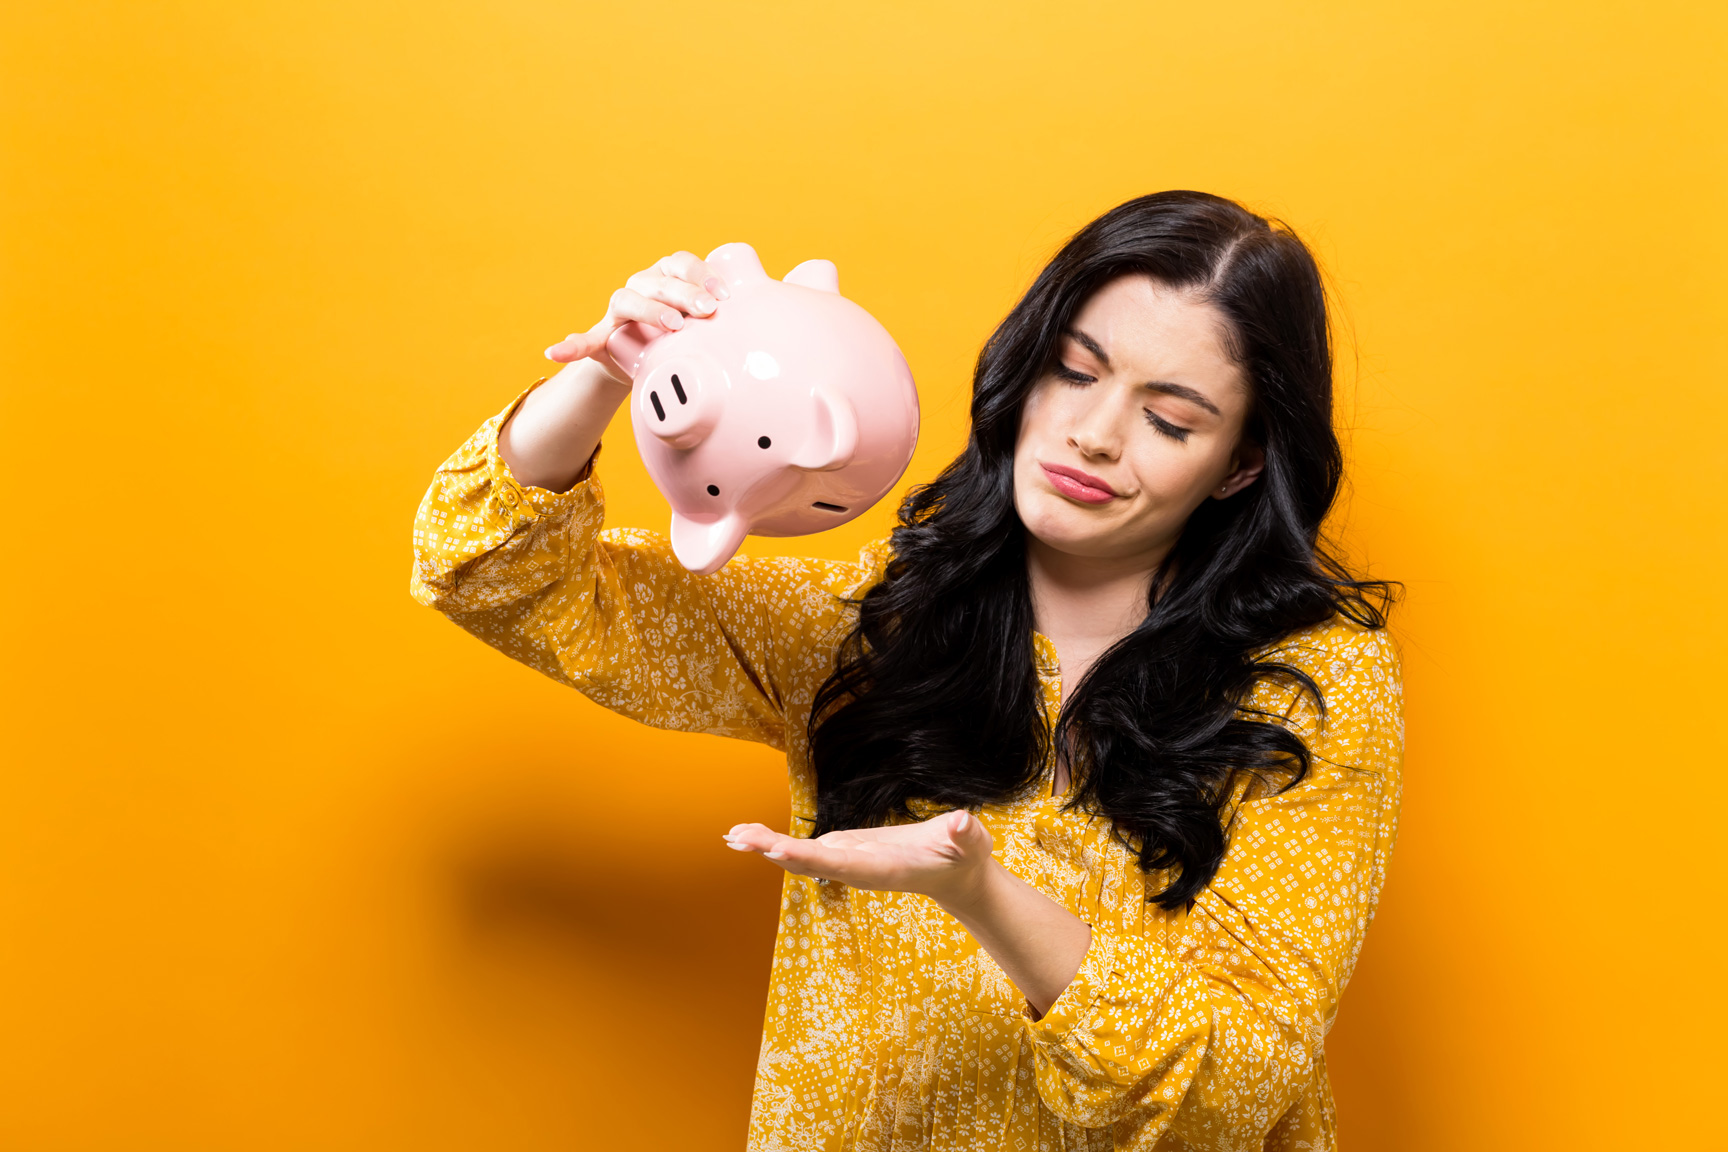 A woman holding a piggy bank upside down.